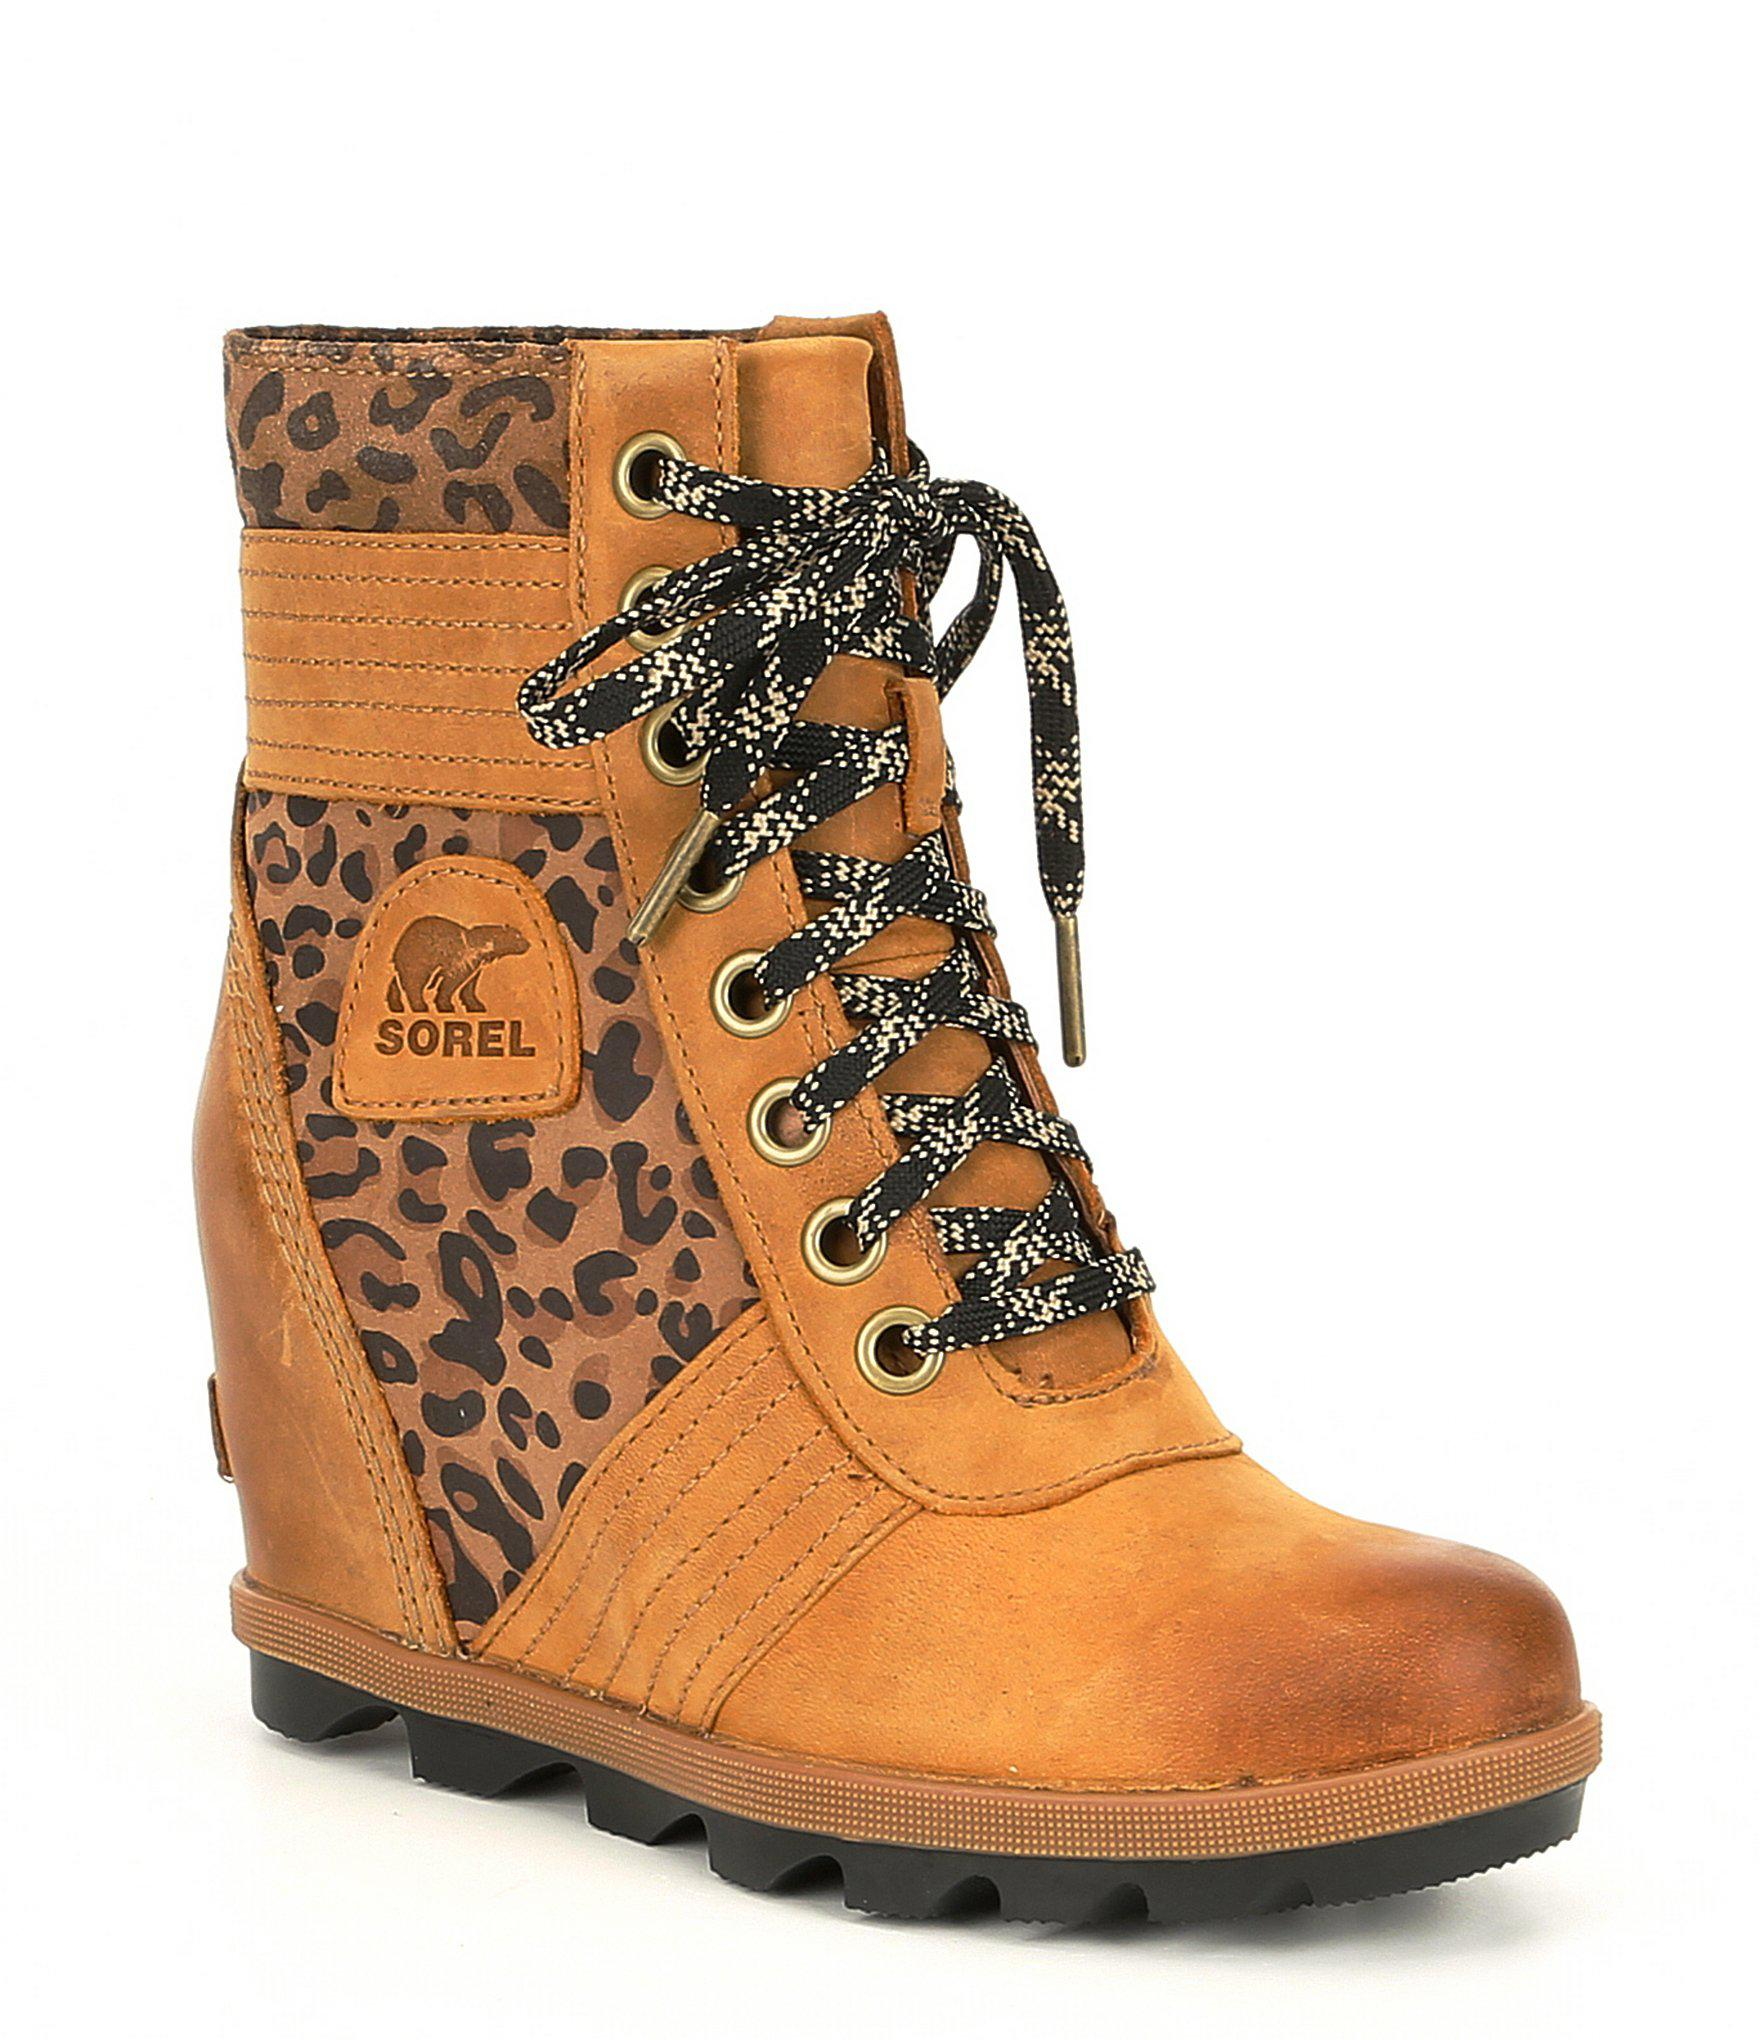 43dbe8be4633 ... best website f4e5a 47a93 Lyst - Sorel Lexie Leather Leopard Wedge in  Brown ...